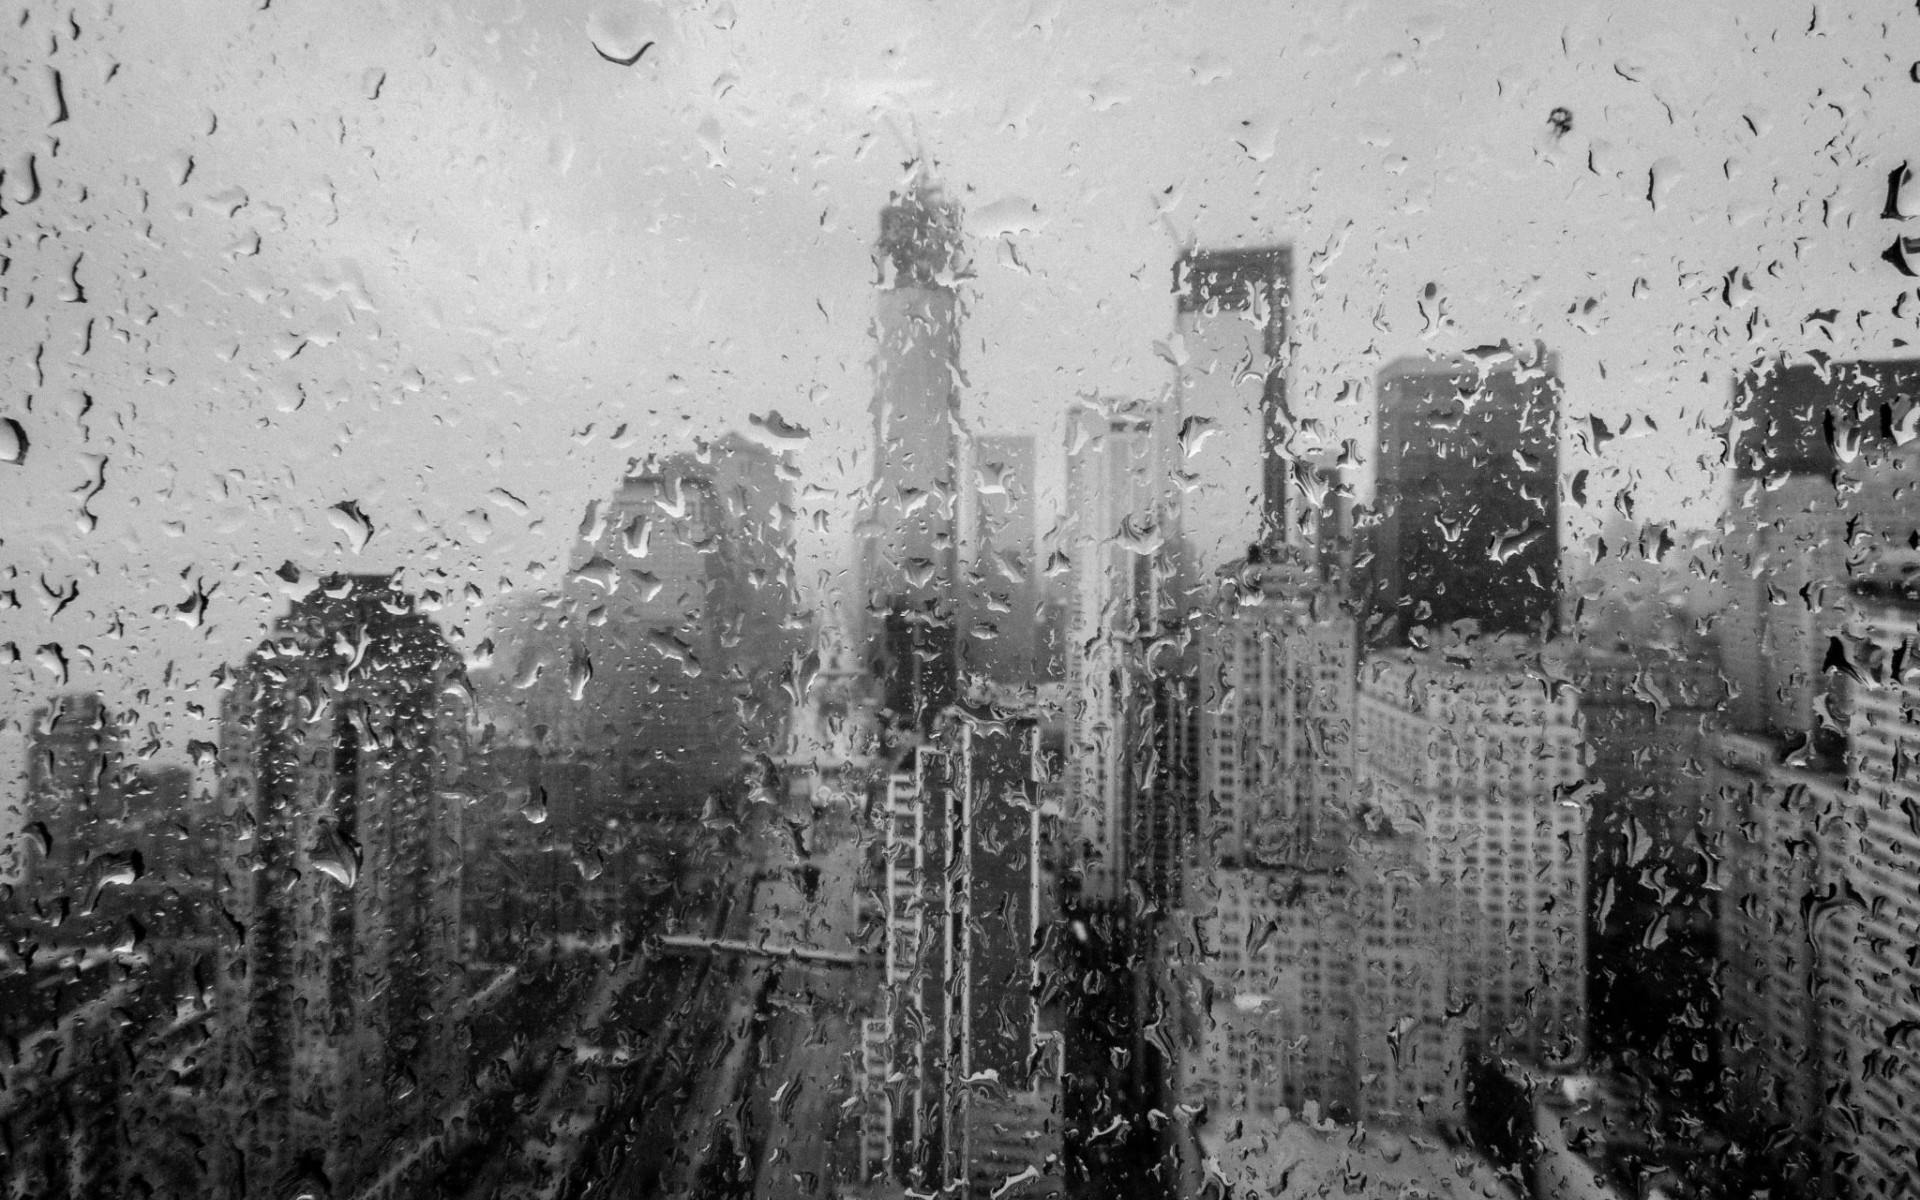 Huricane Sandy new york world architercture buildings skyscrapers rain storm  black white disaster weather drops water